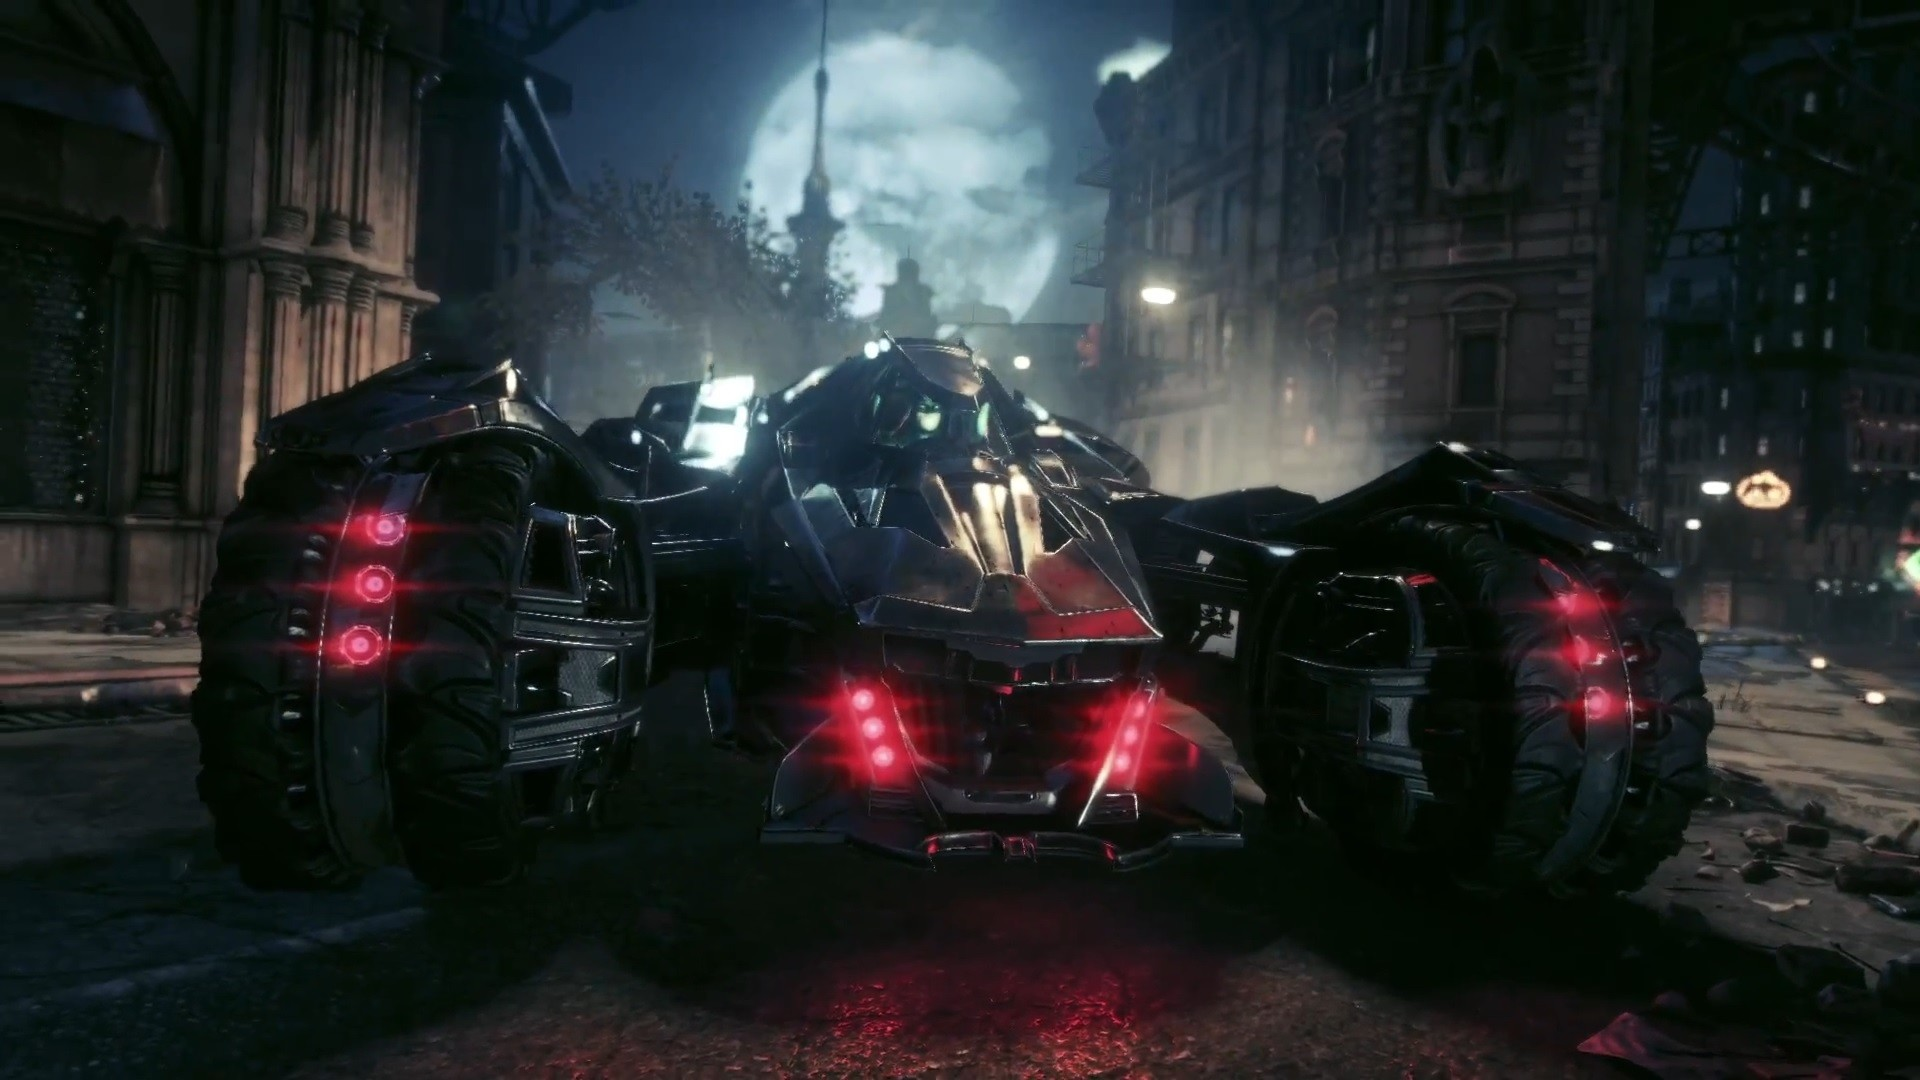 1920x1080 Batman: Arkham Knight Will Be Delayed Until 2015, New Batmobile Battle Mode  Trailer Released